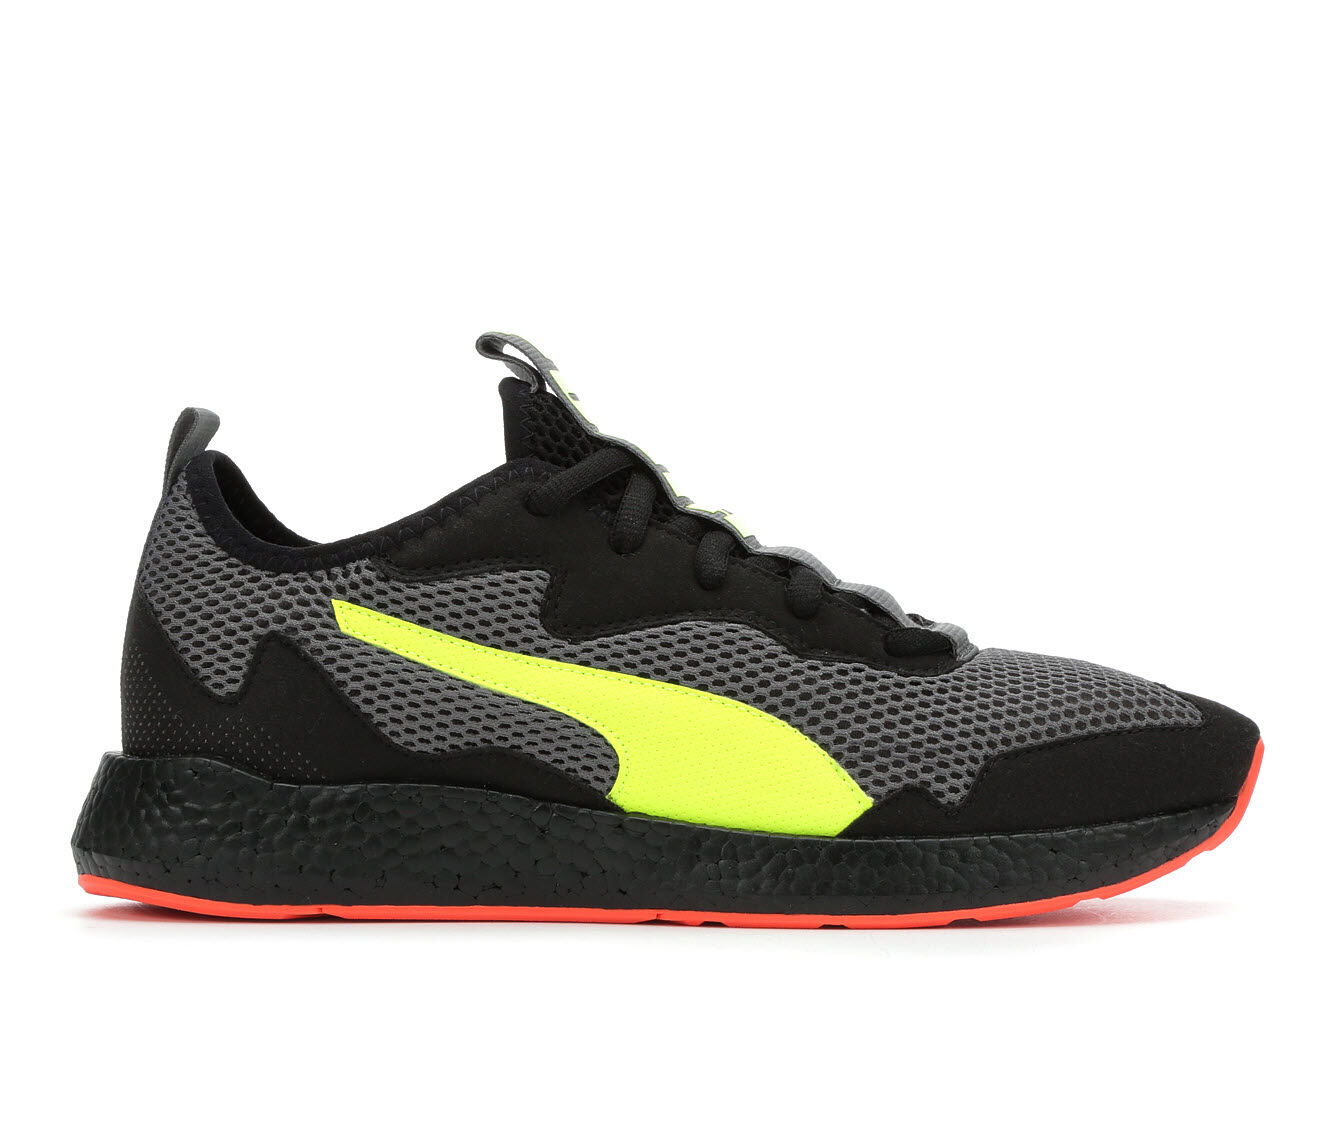 purchase clearance Men's Puma NRGY Neko Skim Sneakers Gry/Blk/Yell/Rd